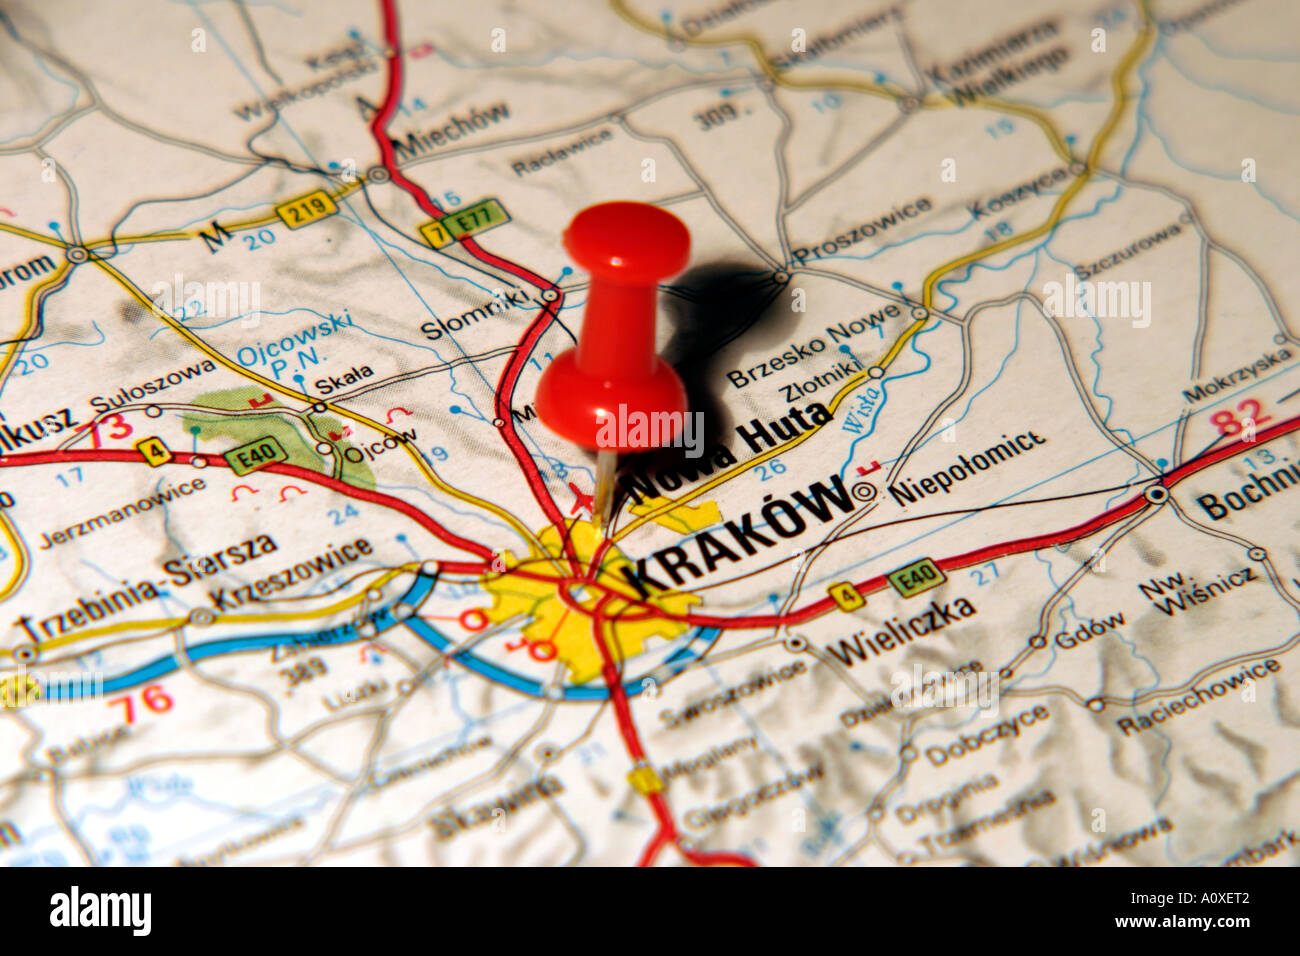 Map Pin pointing to Krakow Poland on a road map Stock Photo